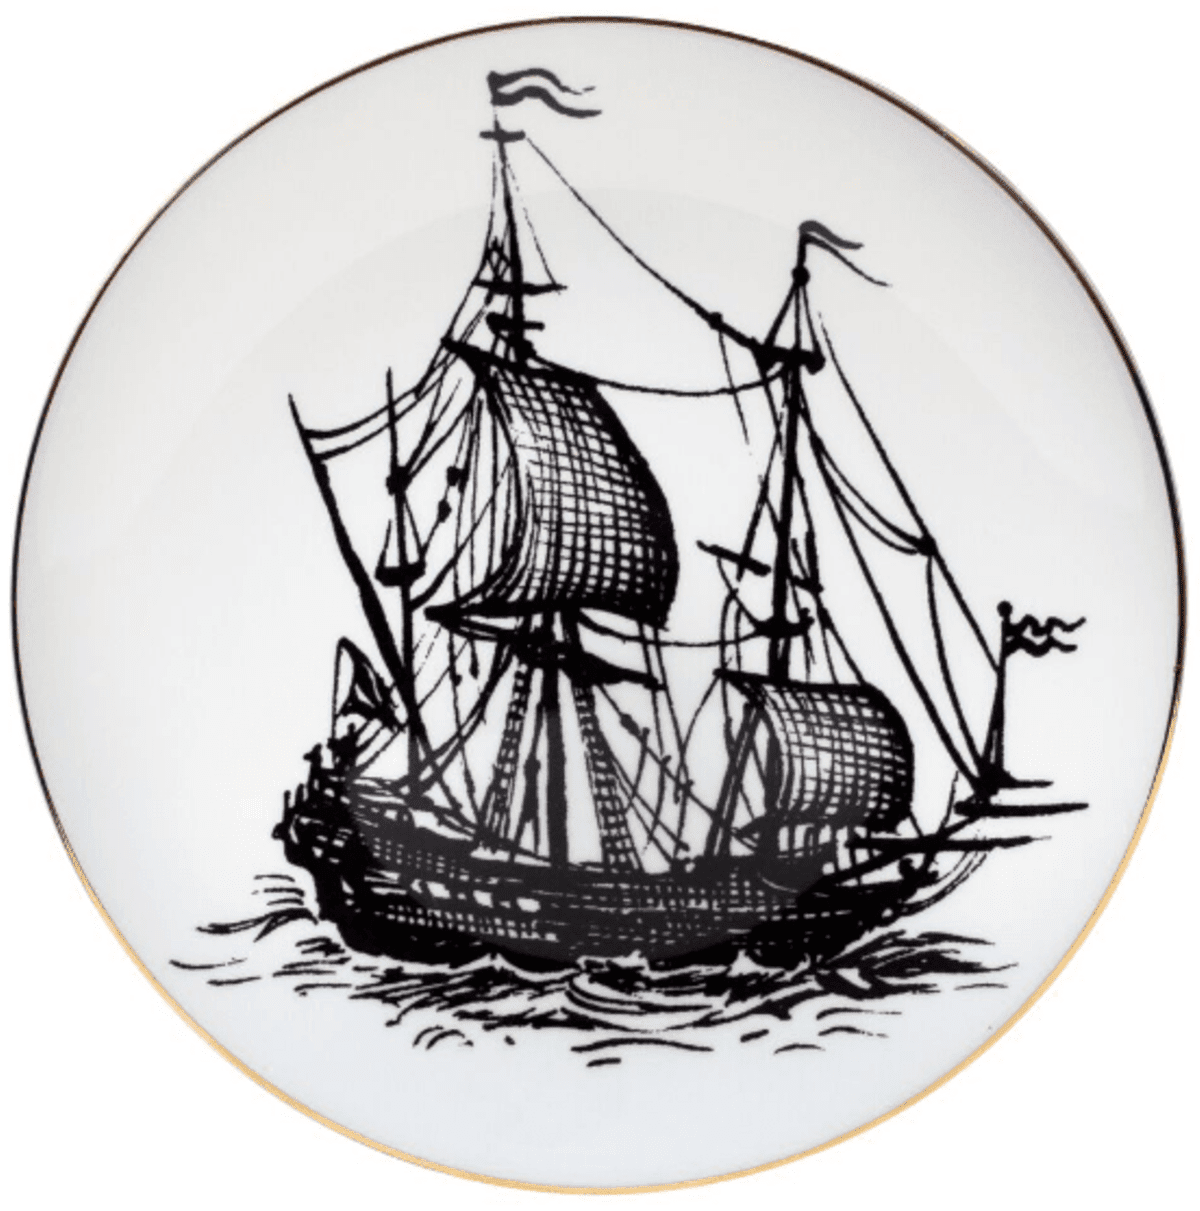 Pirate Ship Plate Coaster